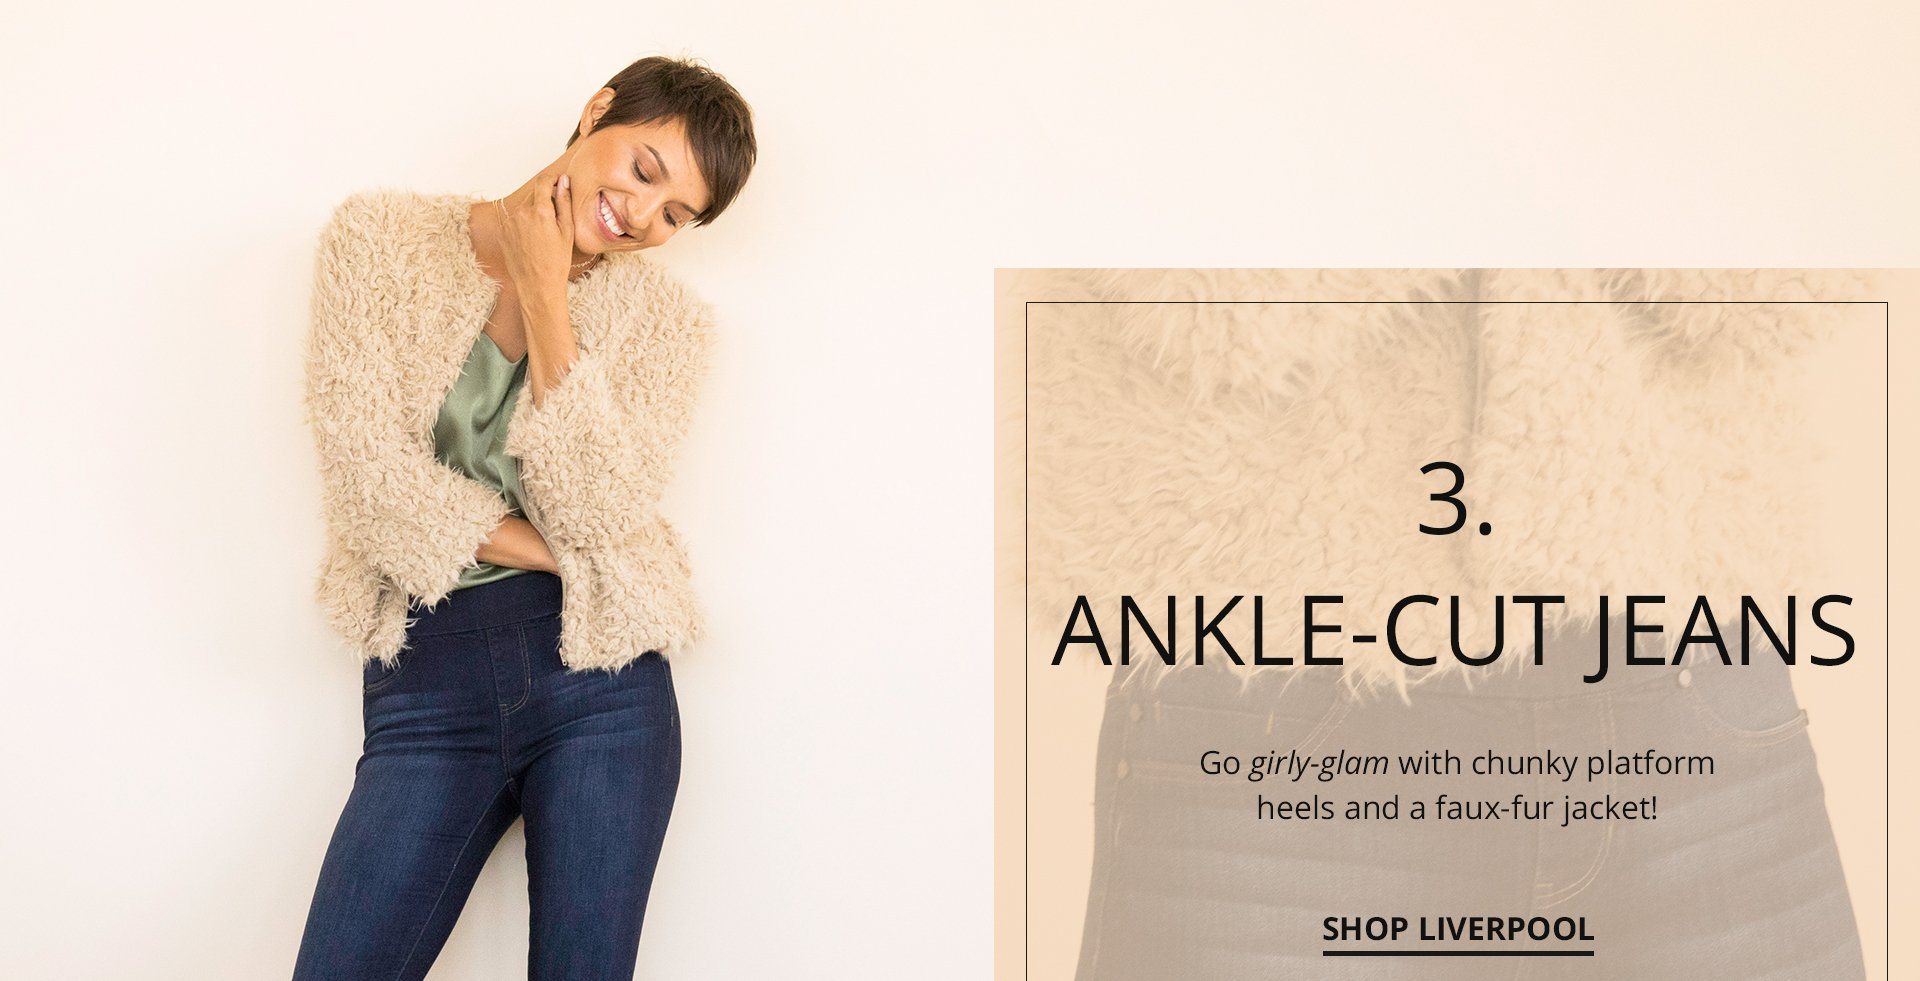 Ankle-cut jeans. Go girly-glam with chunky platform heels and faux-fur jacket.